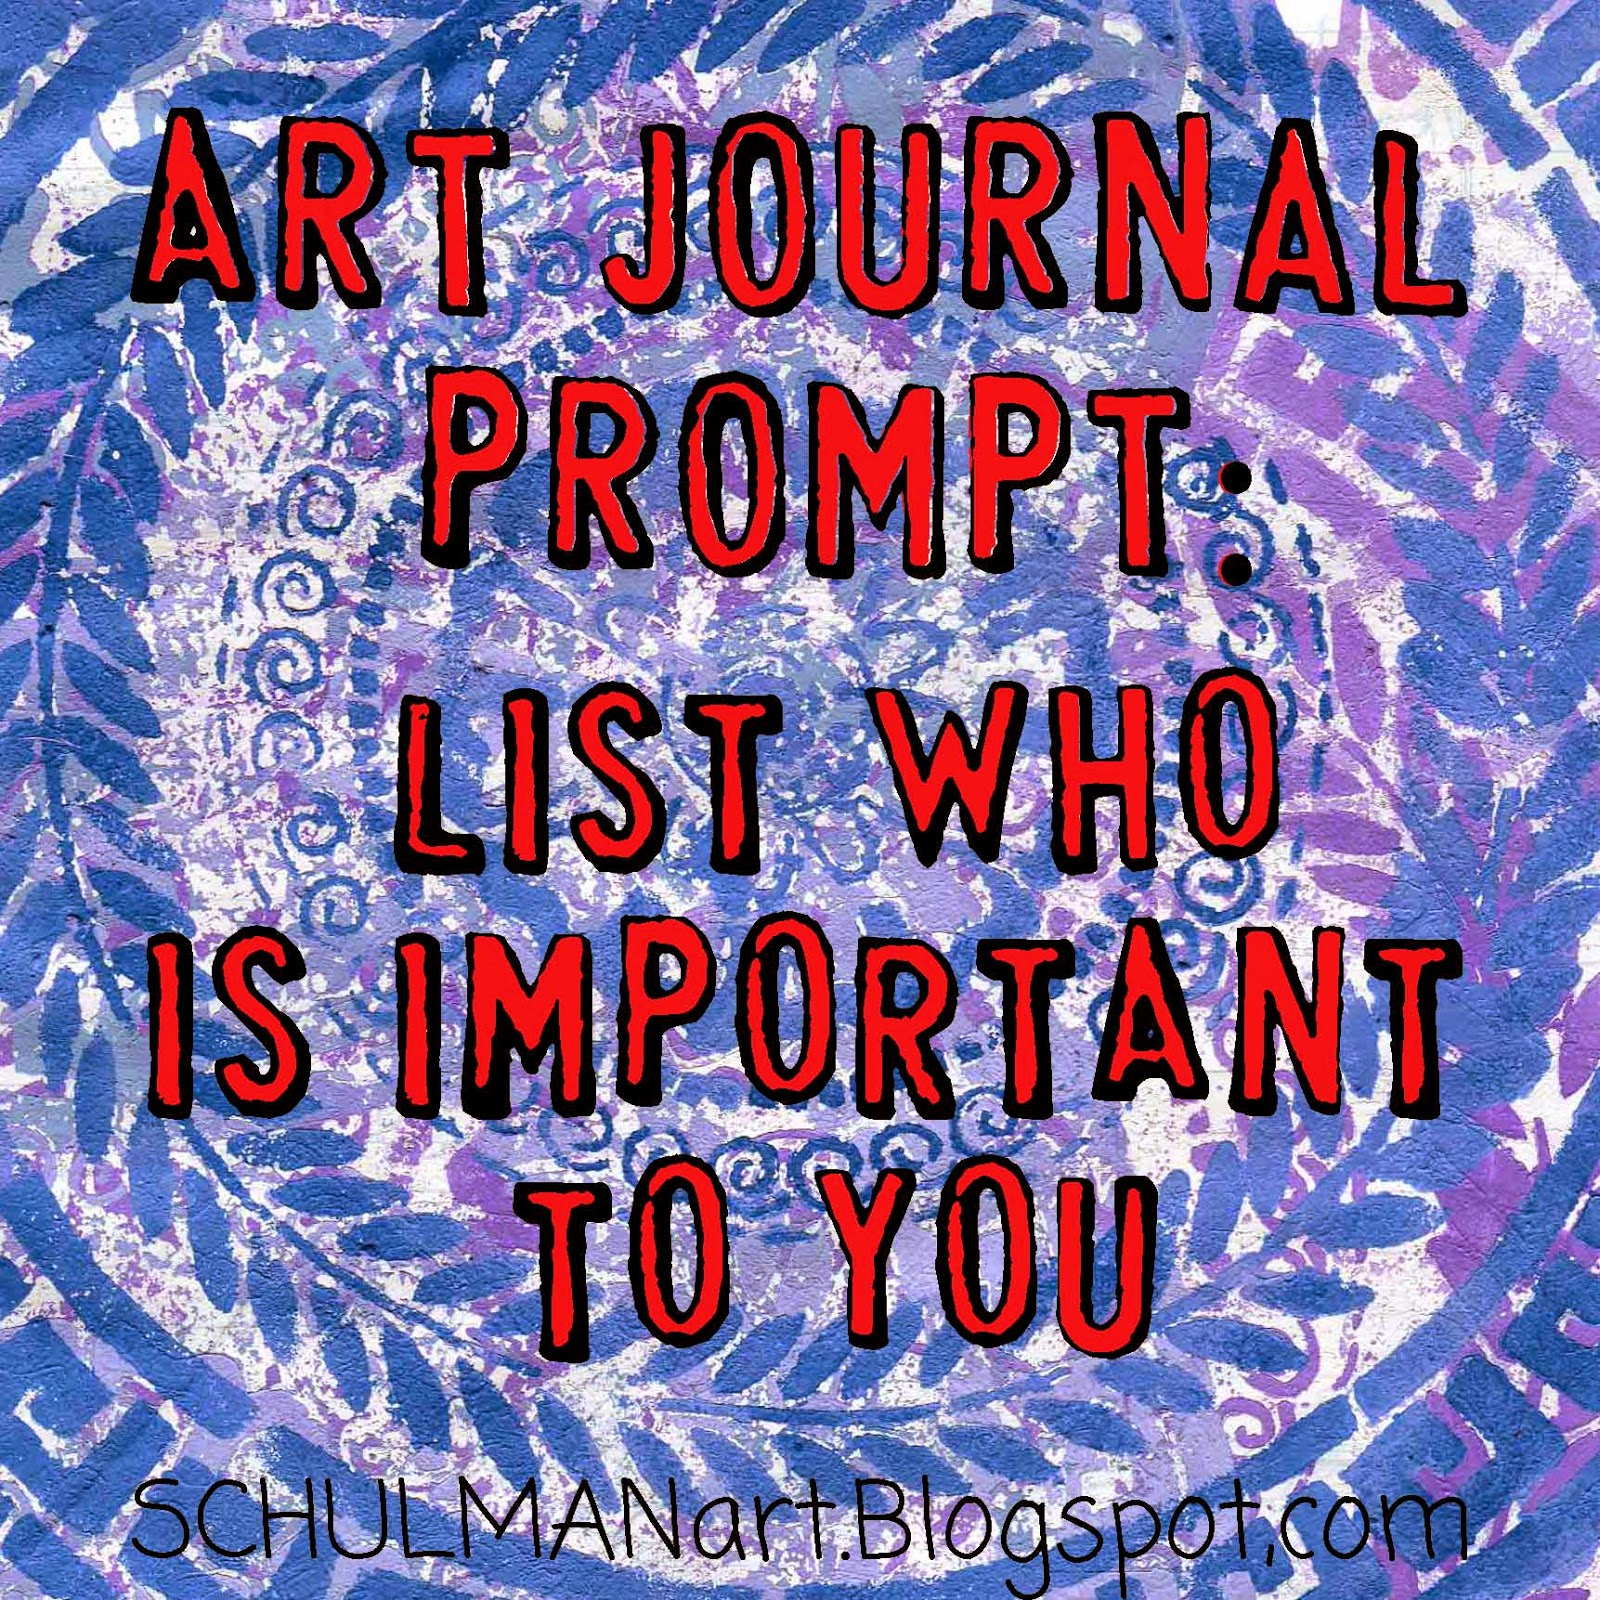 Art journal prompts | art journaling | Art journal ideas | Discover more art journaling examples at http://schulmanart.blogspot.com/2014/07/art-journal-prompt-who-is-important-to.html